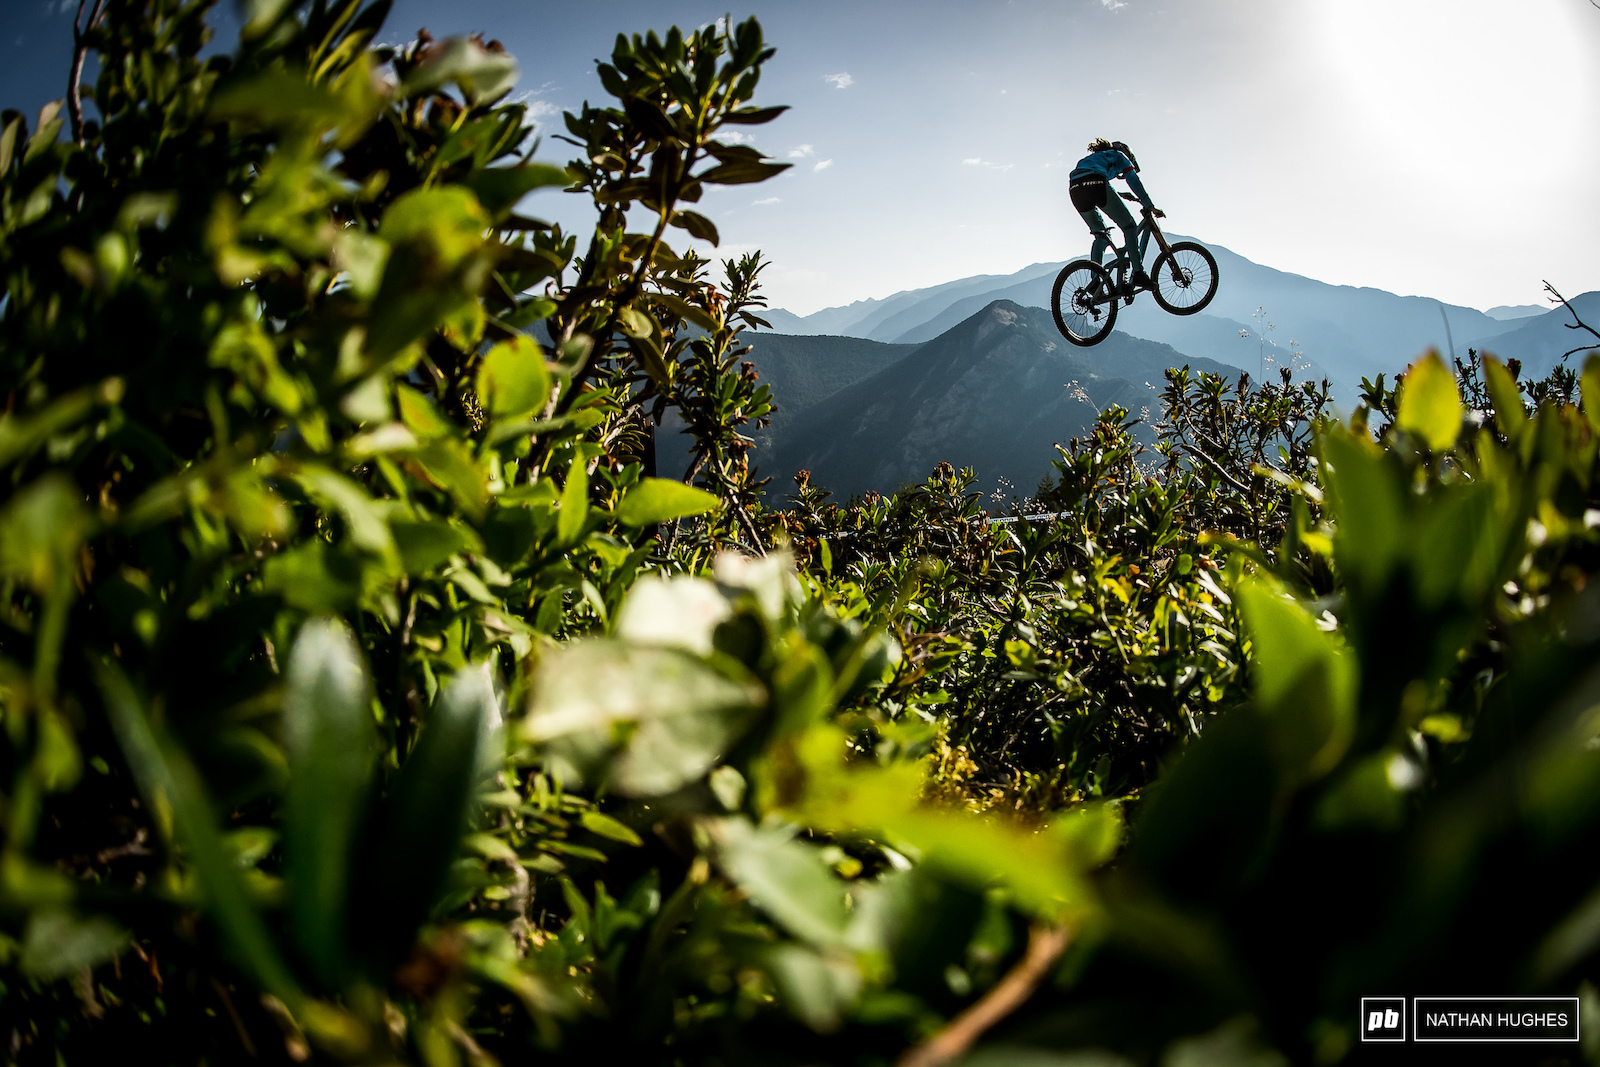 Early morning laps with a golden-hour view for Rachel Atherton.